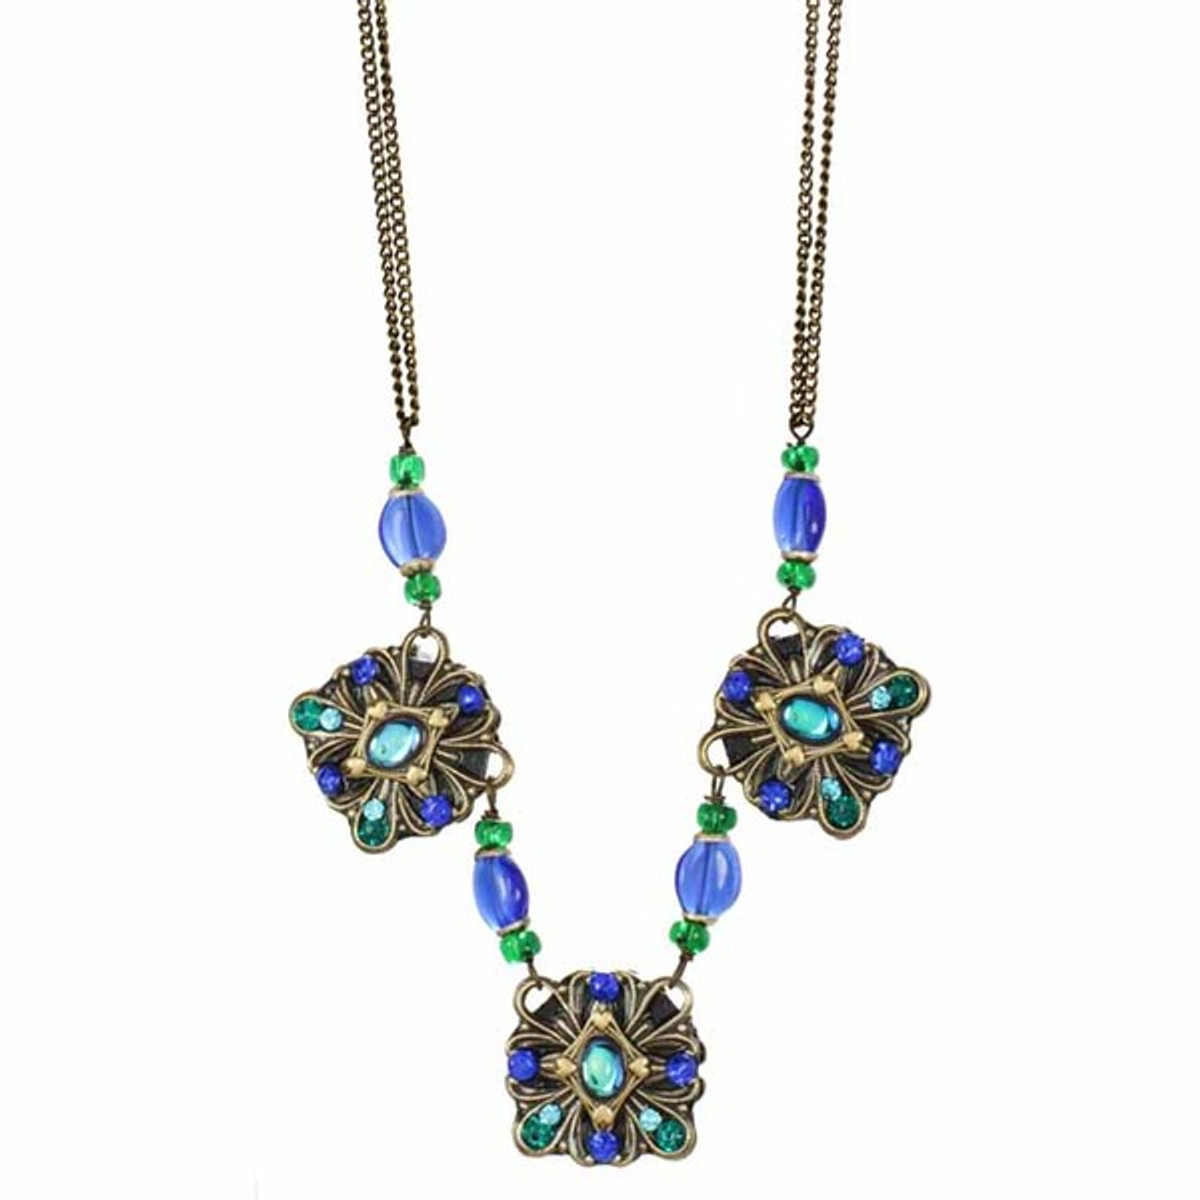 Peacock Necklace By Michal Golan - N3278